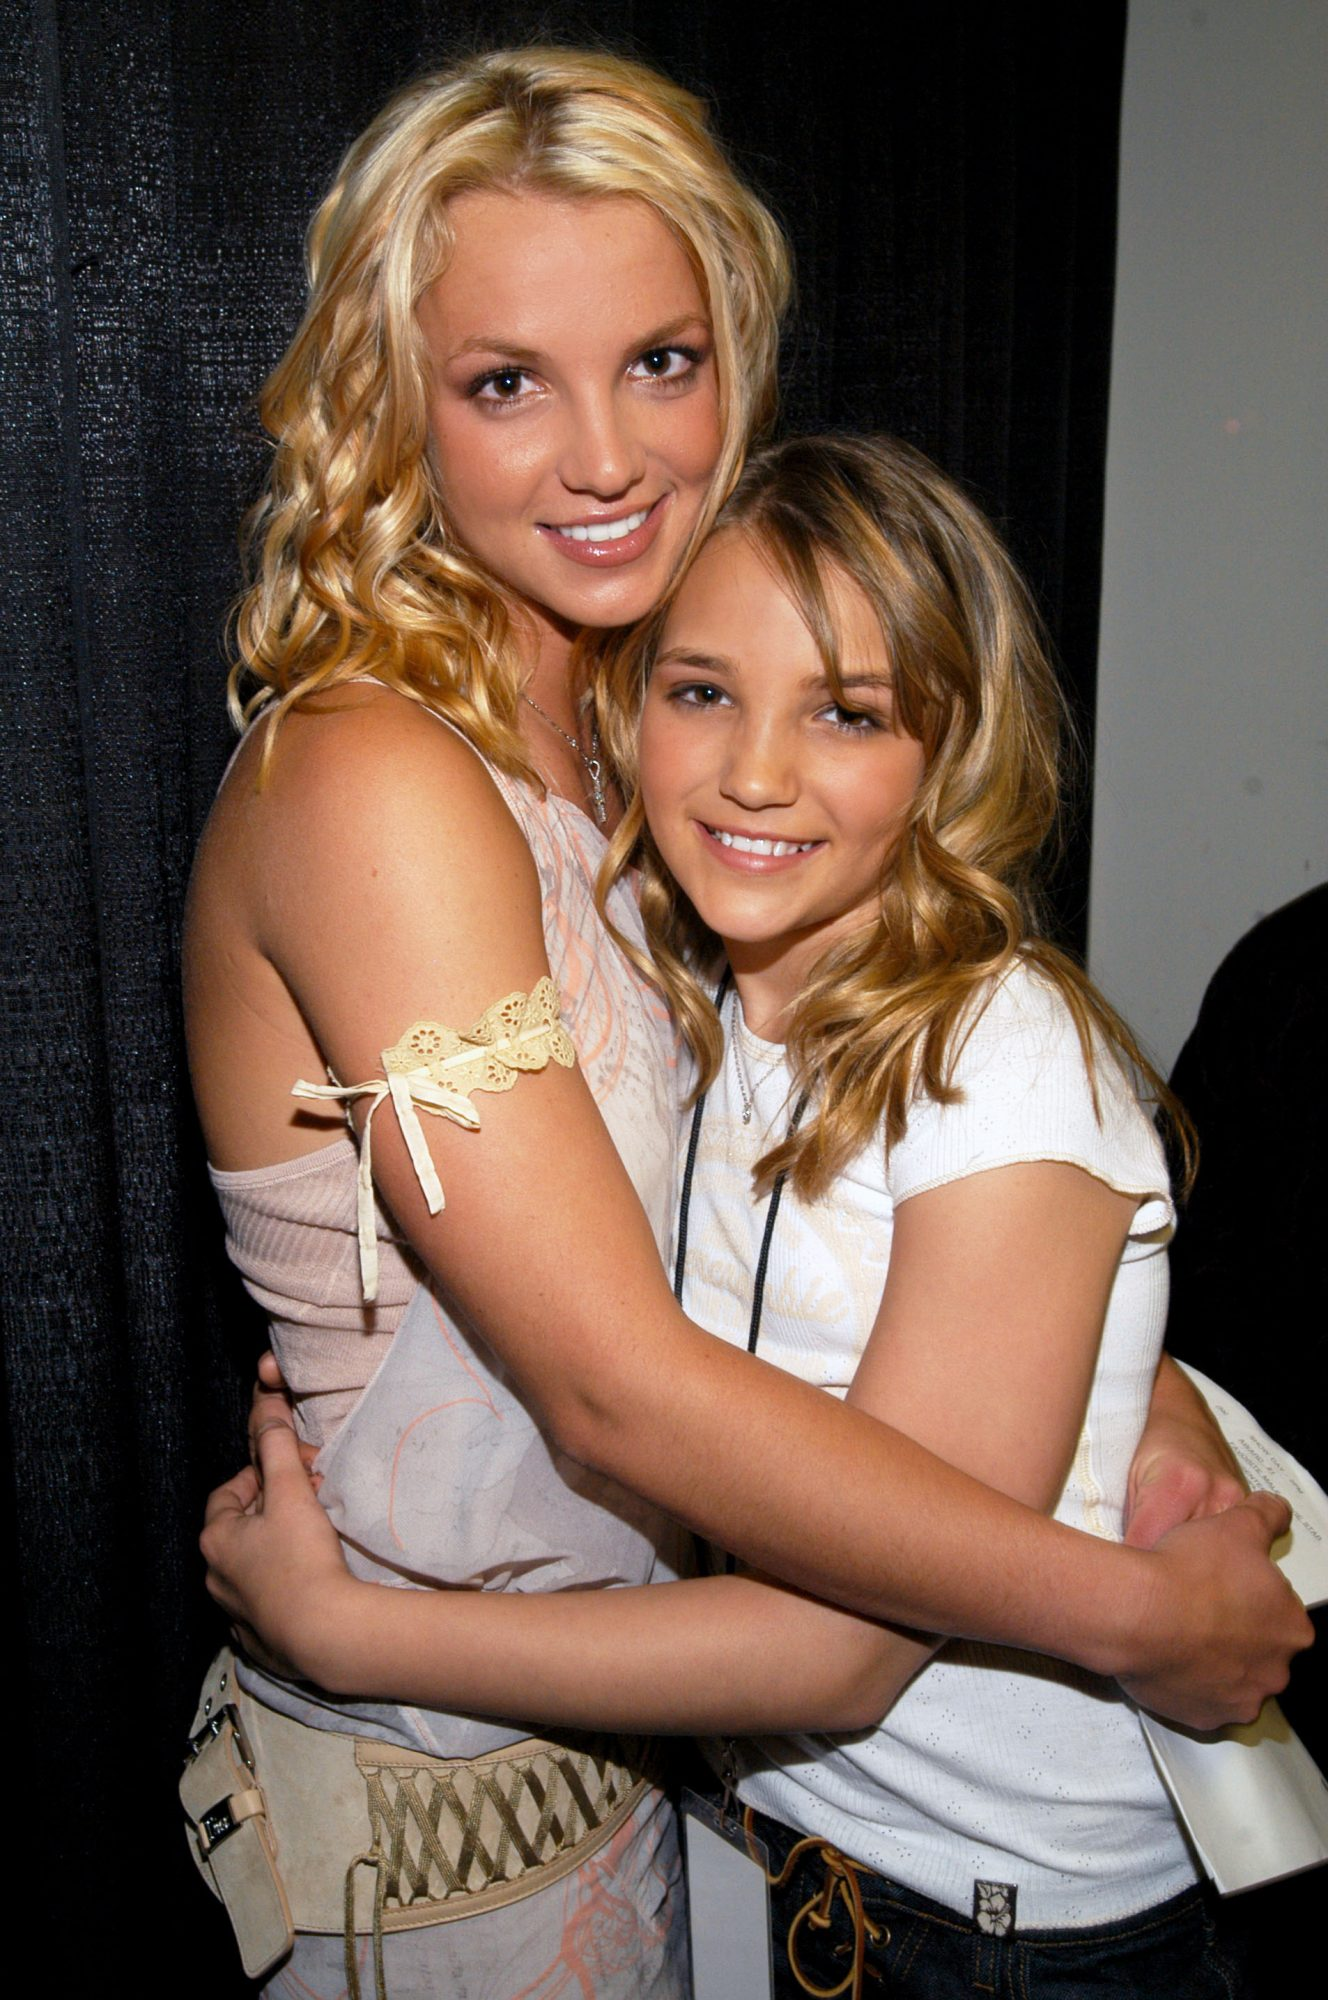 Britney Spears and Jamie-Lynn Spears - Nickelodeon Kids Choice Awards 2003